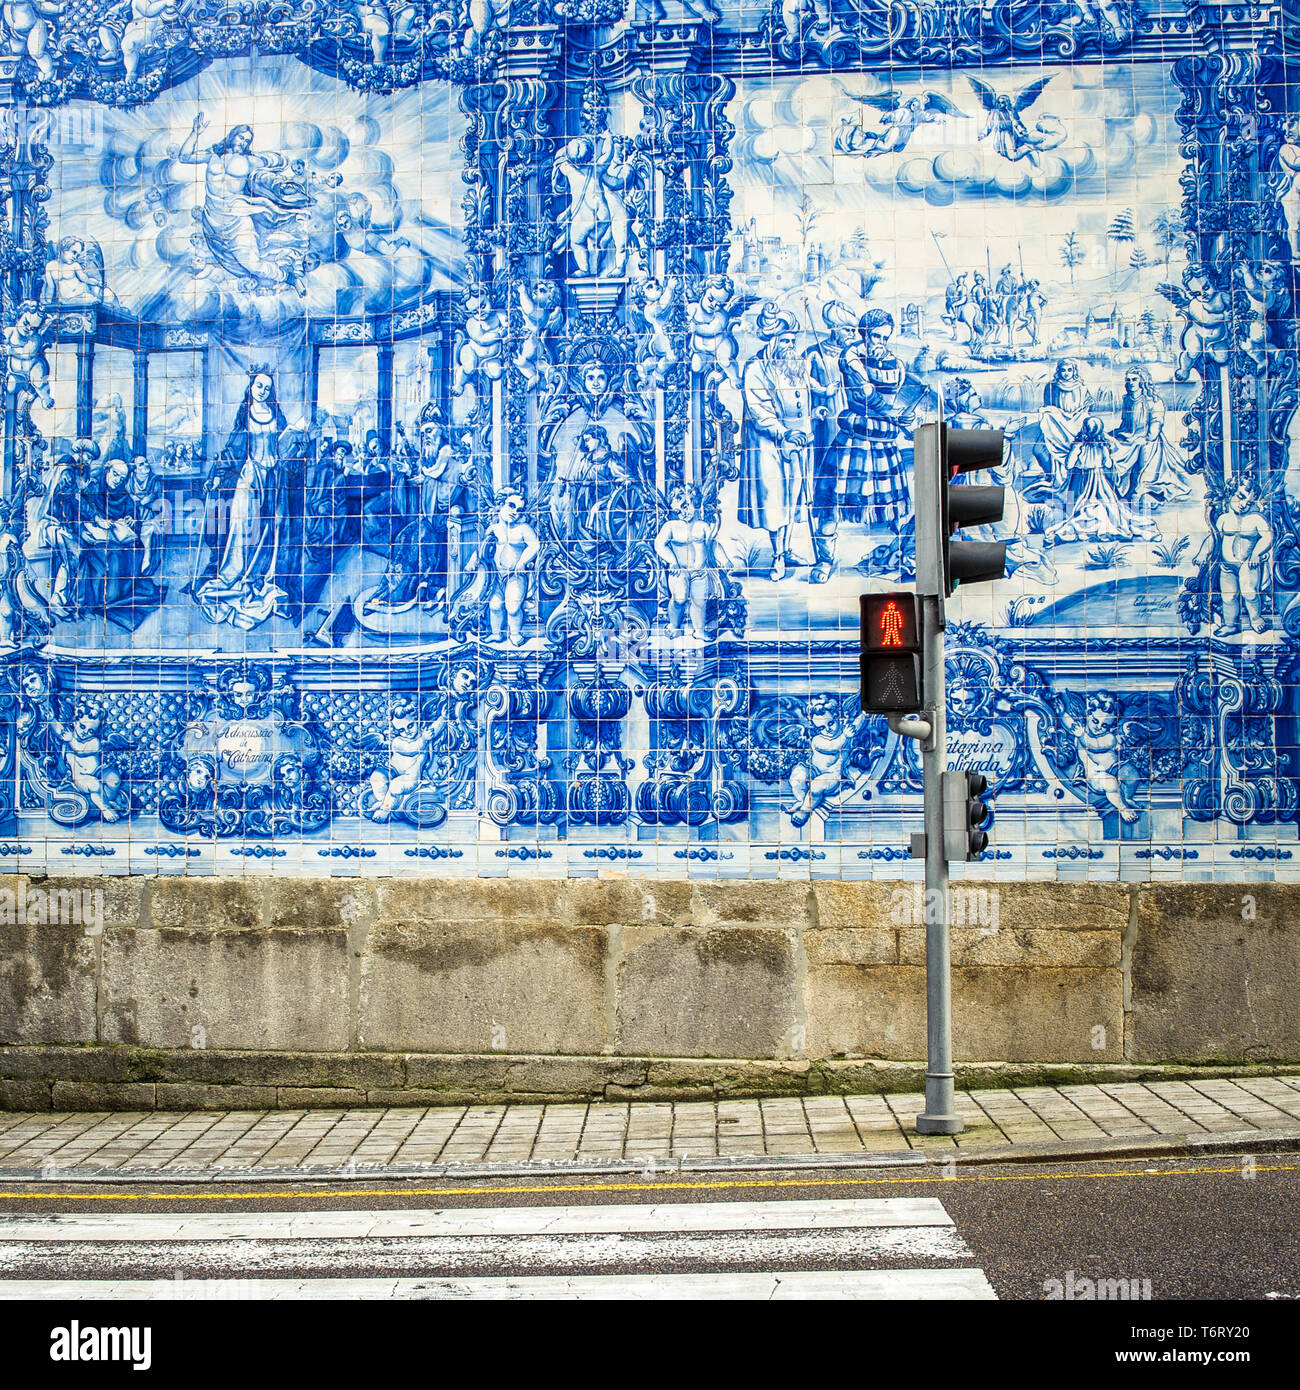 Street of Porto, decorated with azulejos tiles Stock Photo